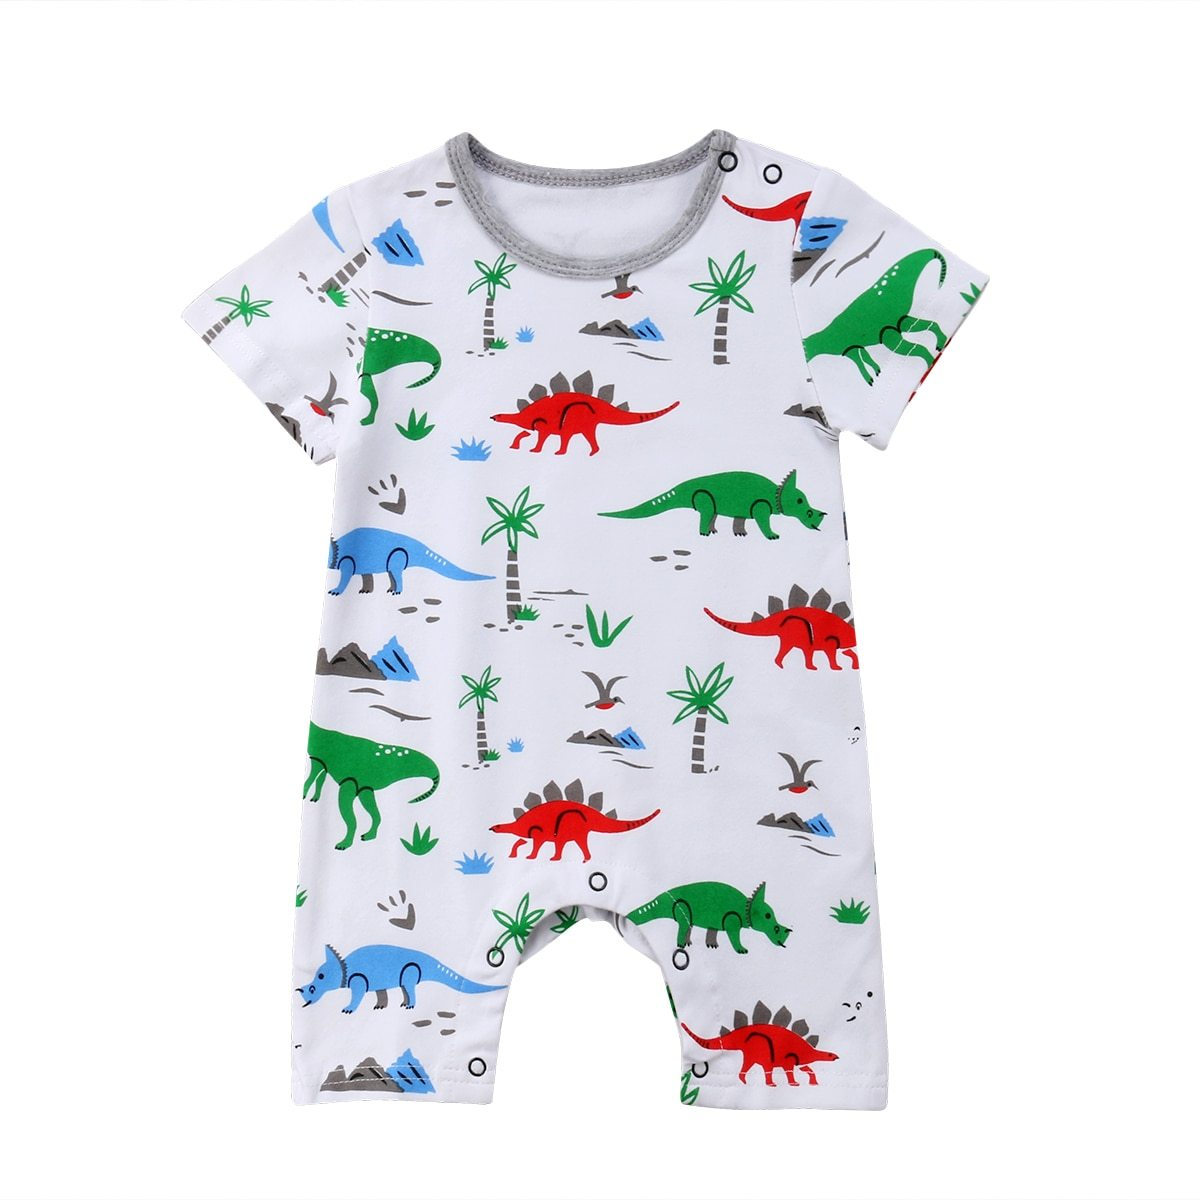 Summer New Dinosaur Print White Short Sleeves Newborn Infant Baby Boys Girlsdresskily-dresskily